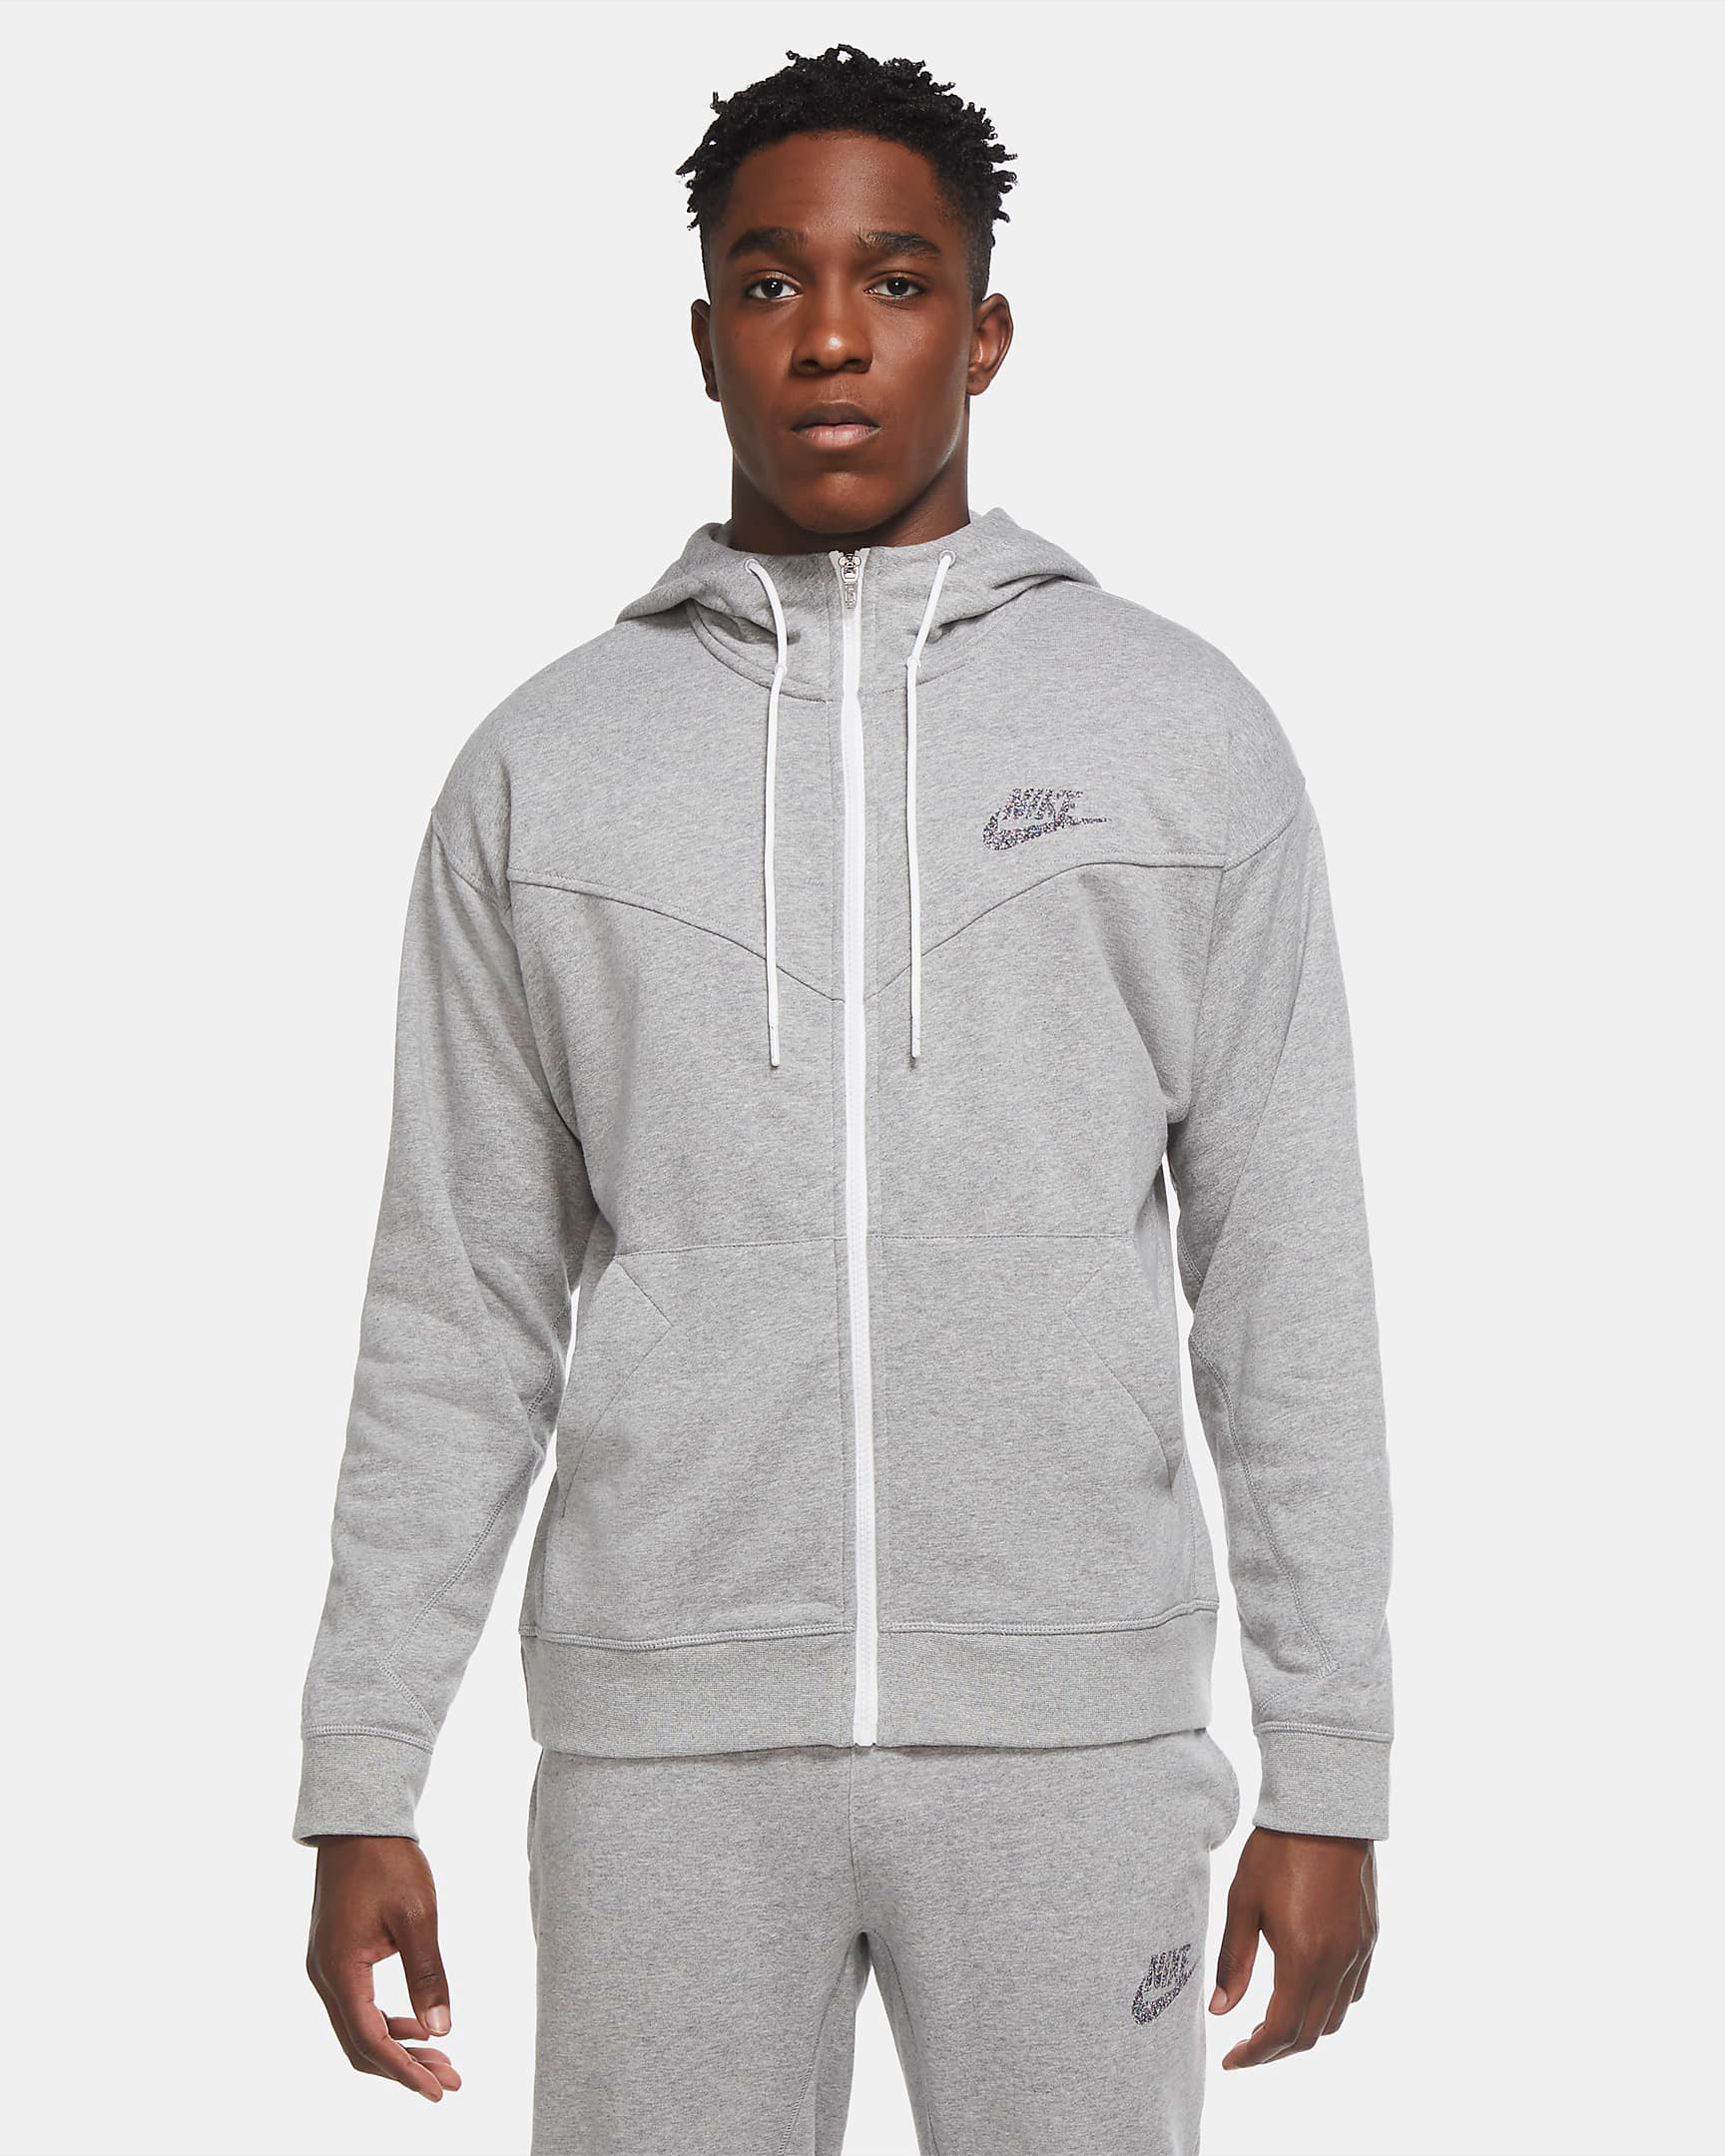 nike-adapt-bb-2-mag-grey-hoodie-to-match